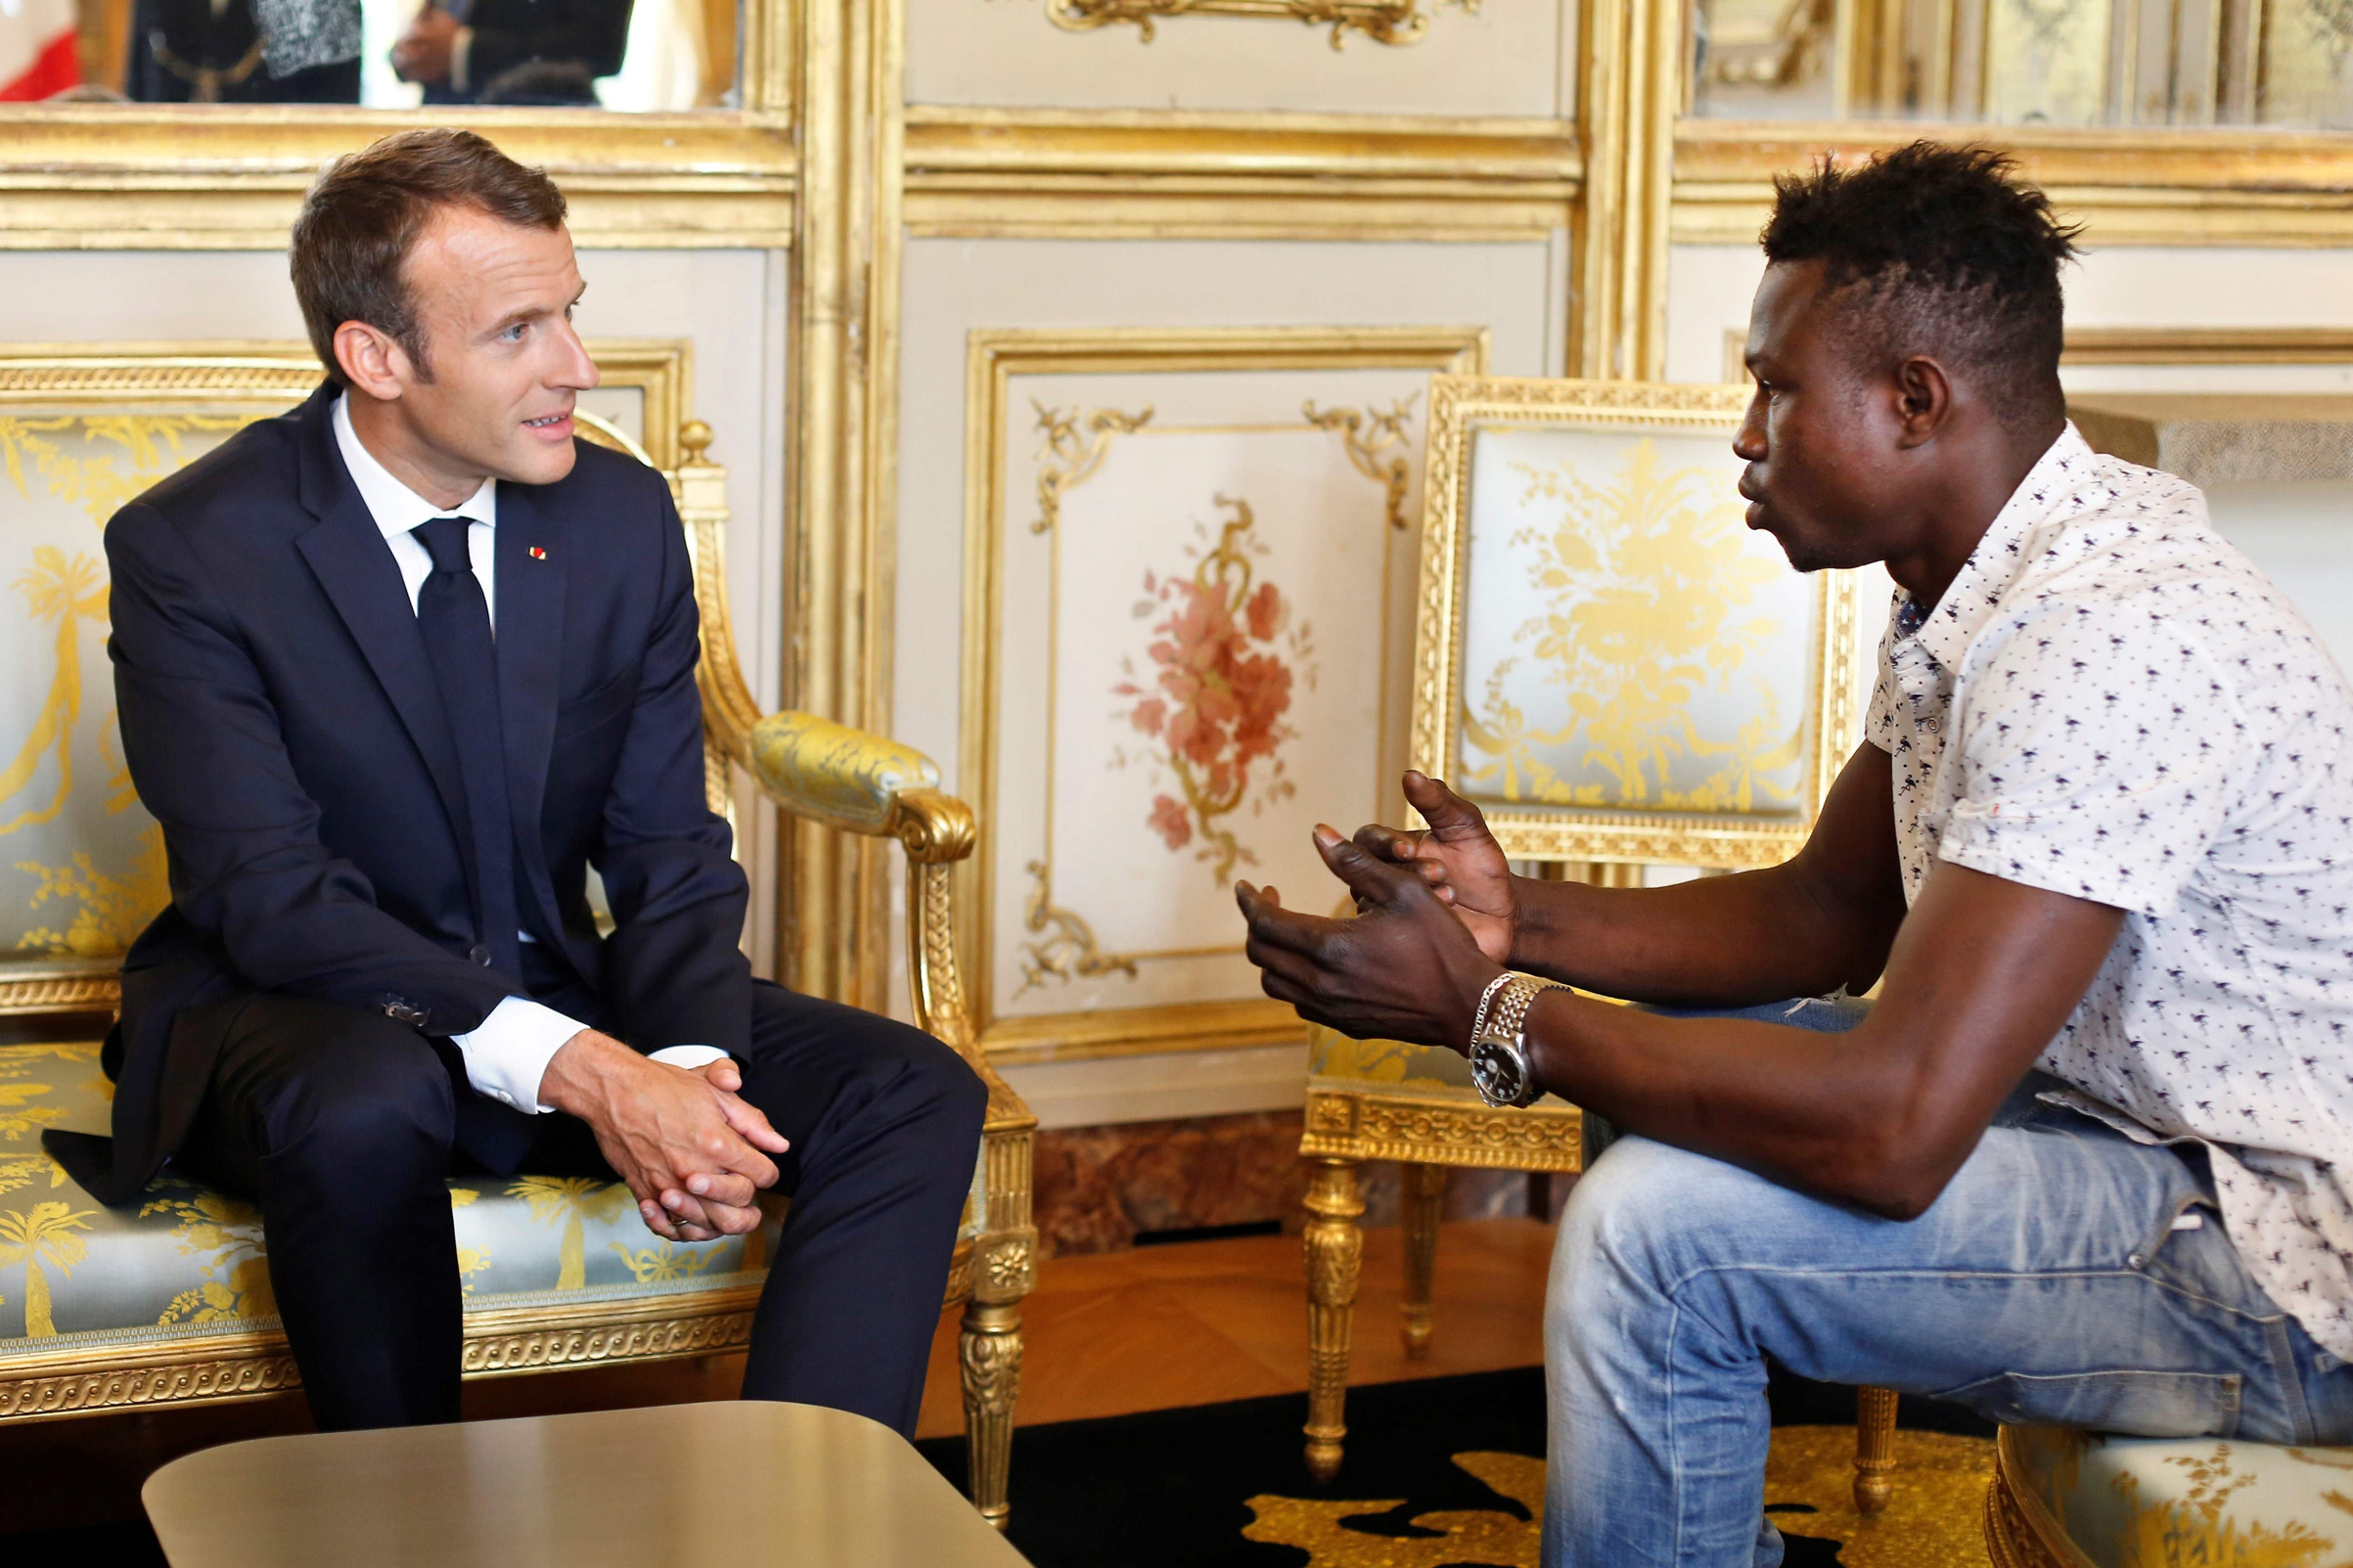 French President Emmanuel Macron speaks with Mamoudou Gassama, 22, from Mali, at the presidential Élysée Palace in Paris on May, 28, 2018. Gassama, living illegally in France, is being honored by Macron for scaling an apartment building to save a child who was dangling from a fifth-floor balcony.